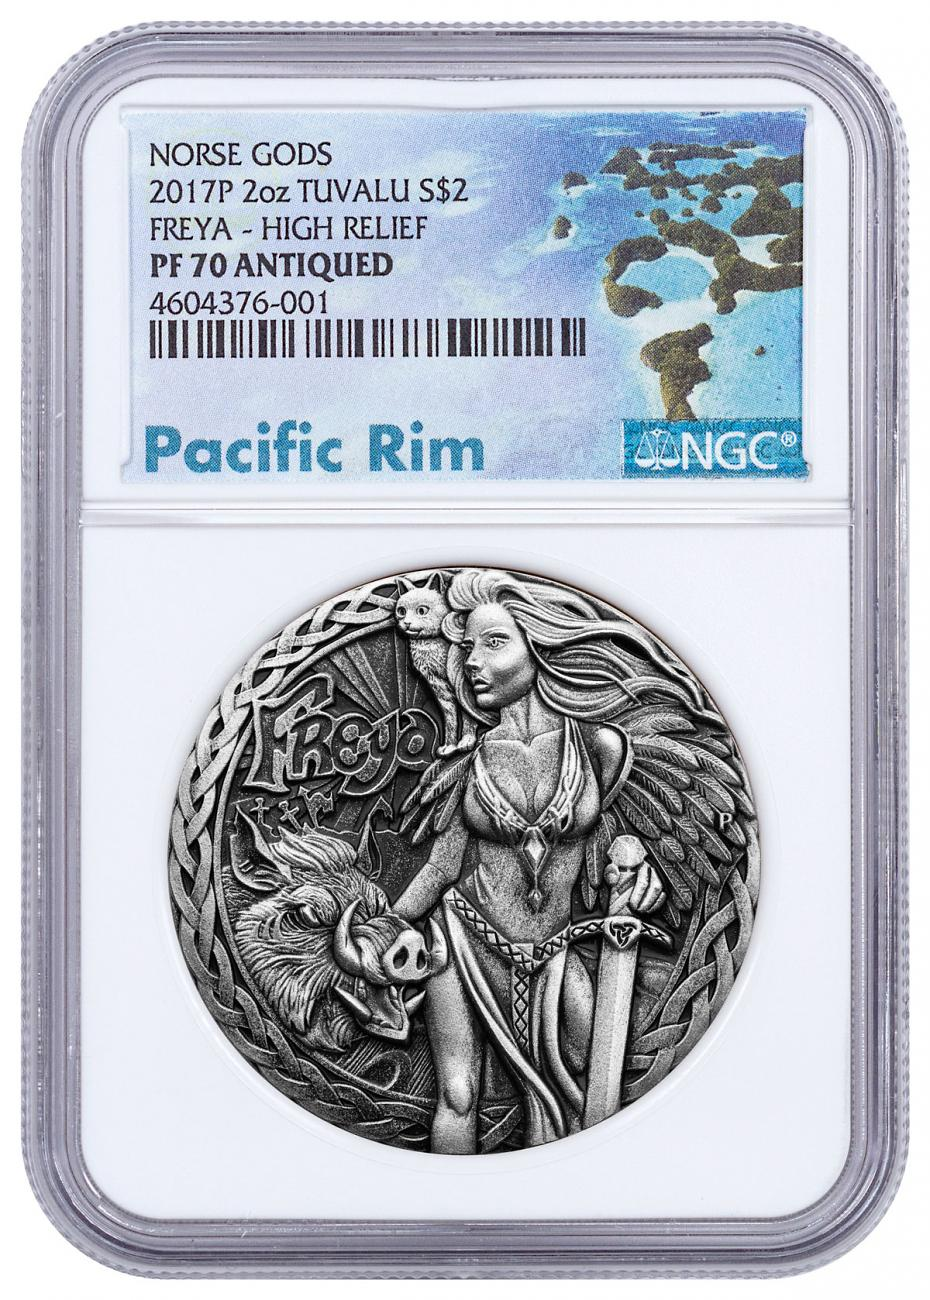 2017-P Tuvalu Norse Goddesses - Freya High Relief 2 oz Silver Antiqued $2 Coin NGC PF70 Exclusive Pacific Rim Label